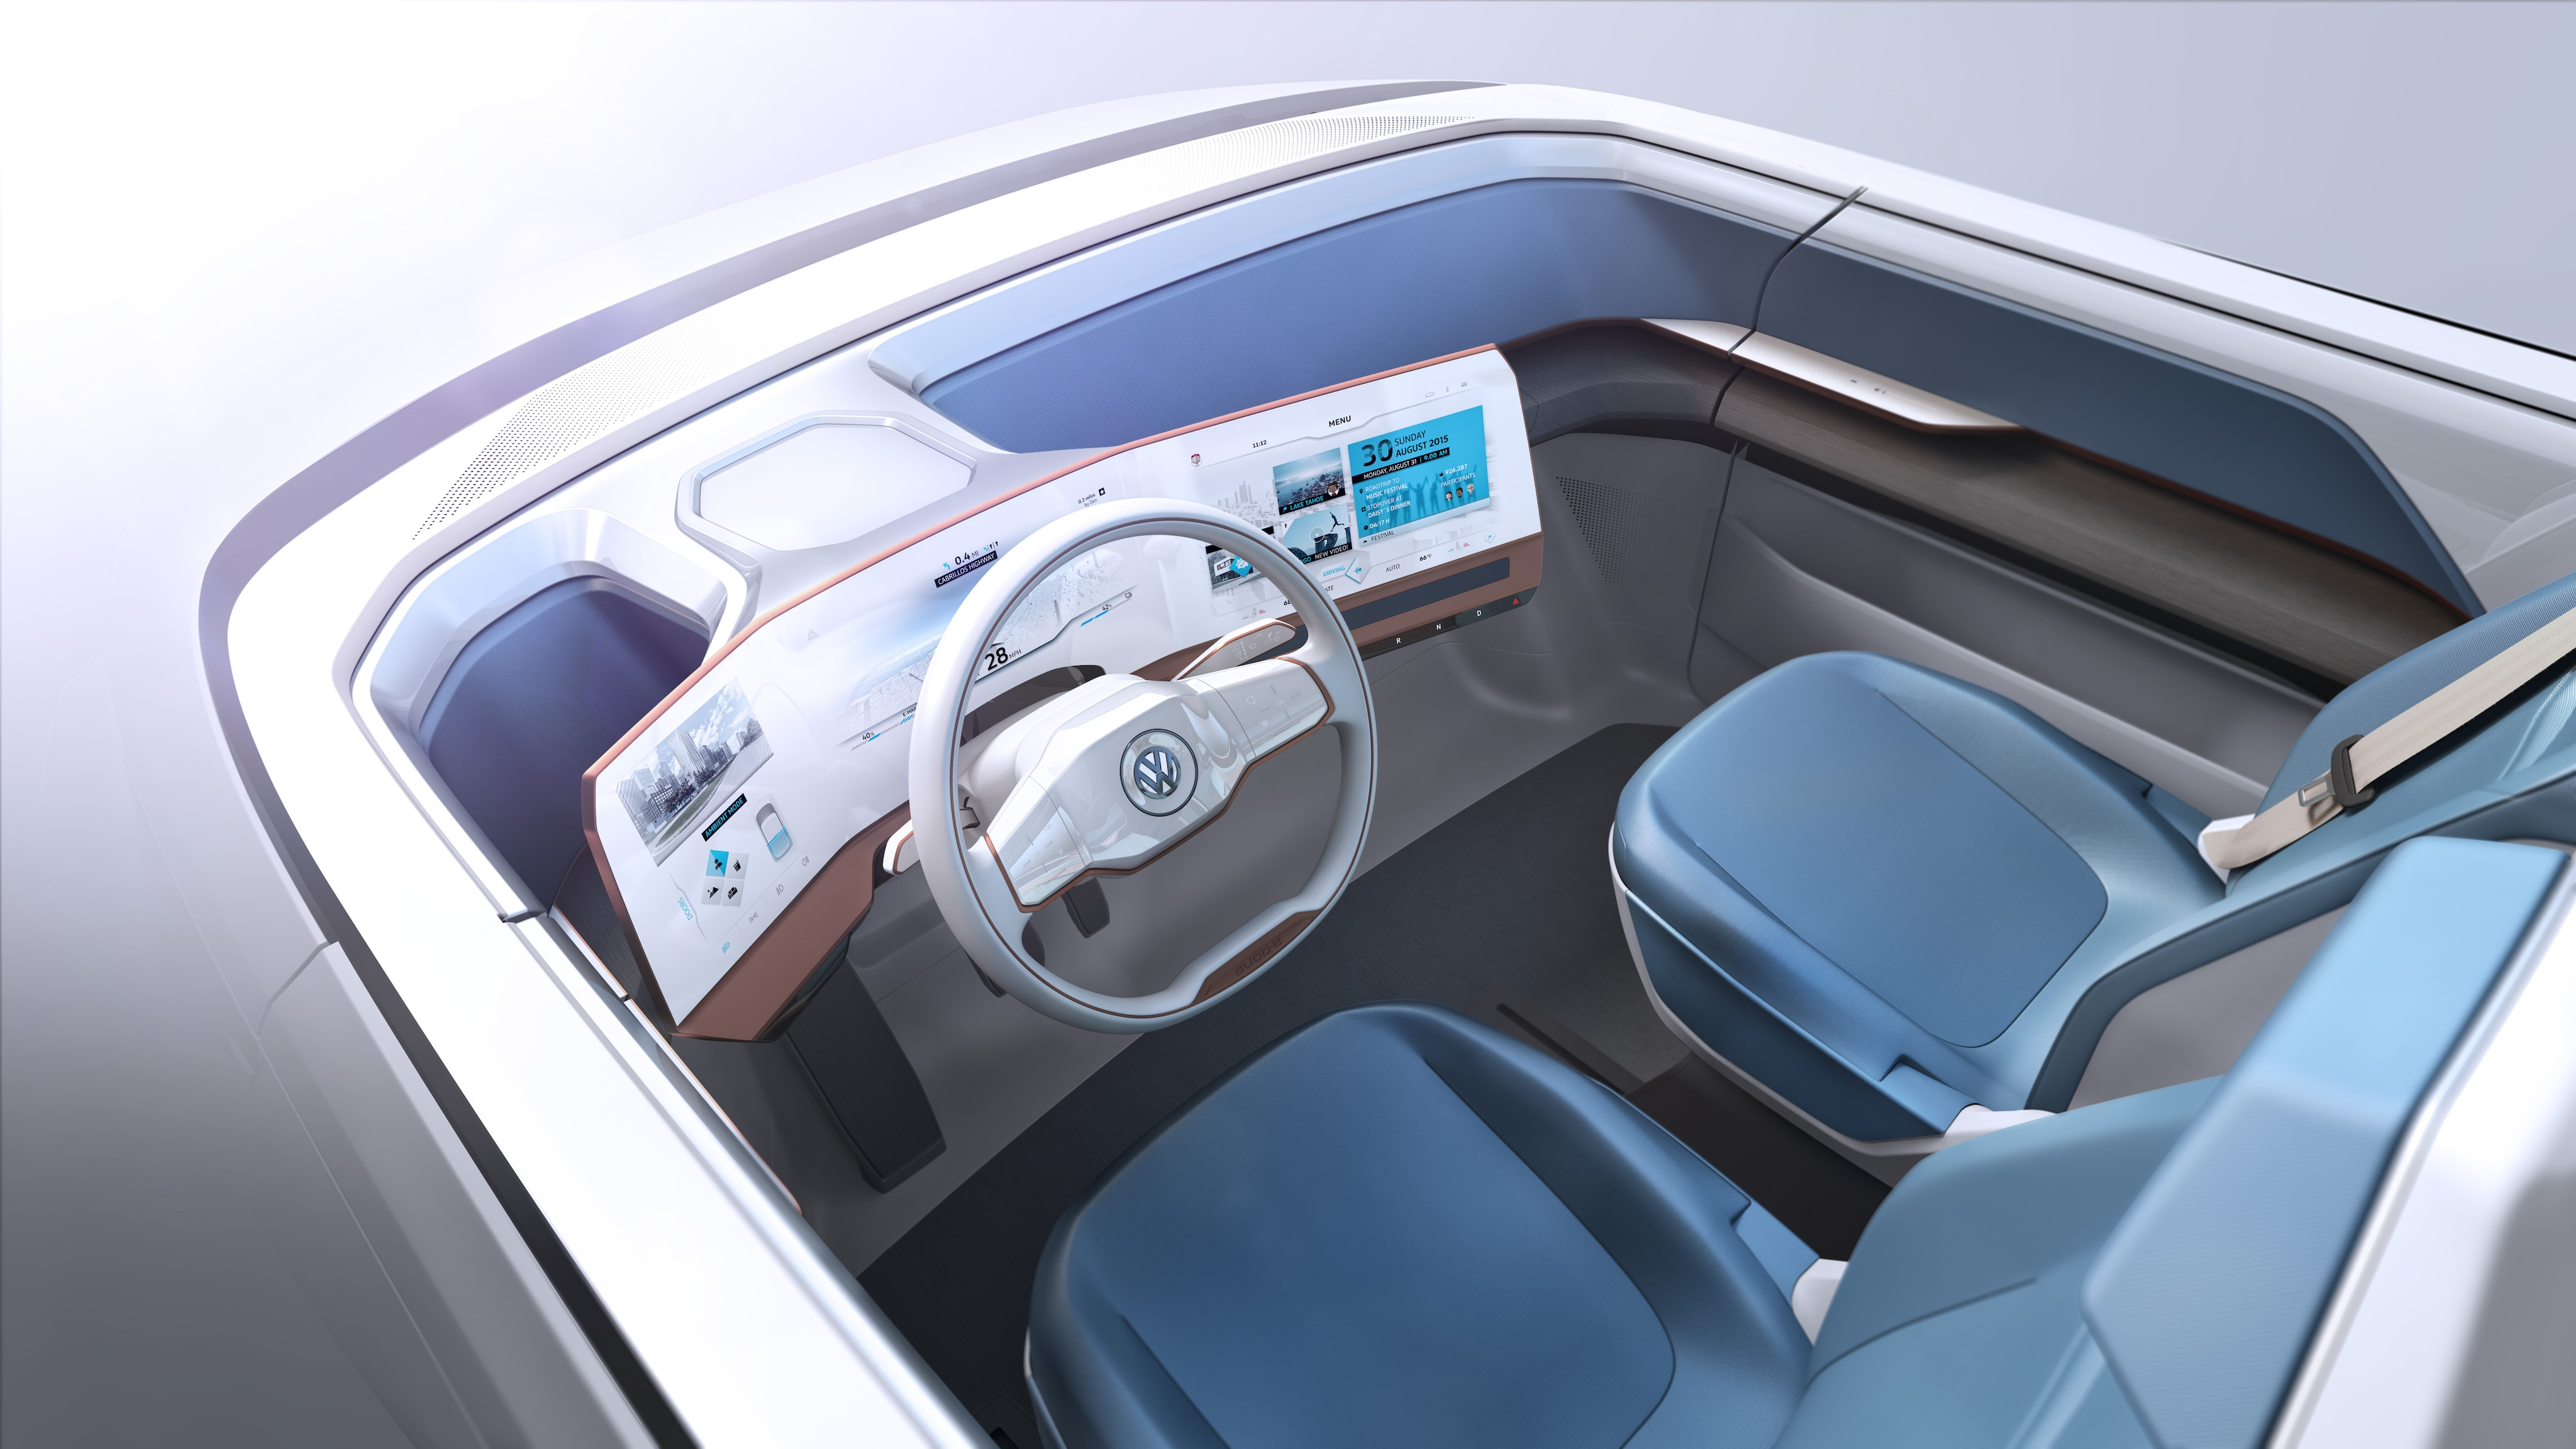 Volkswagen BUDD-e Interior Active Intro Display Infotainment Technology